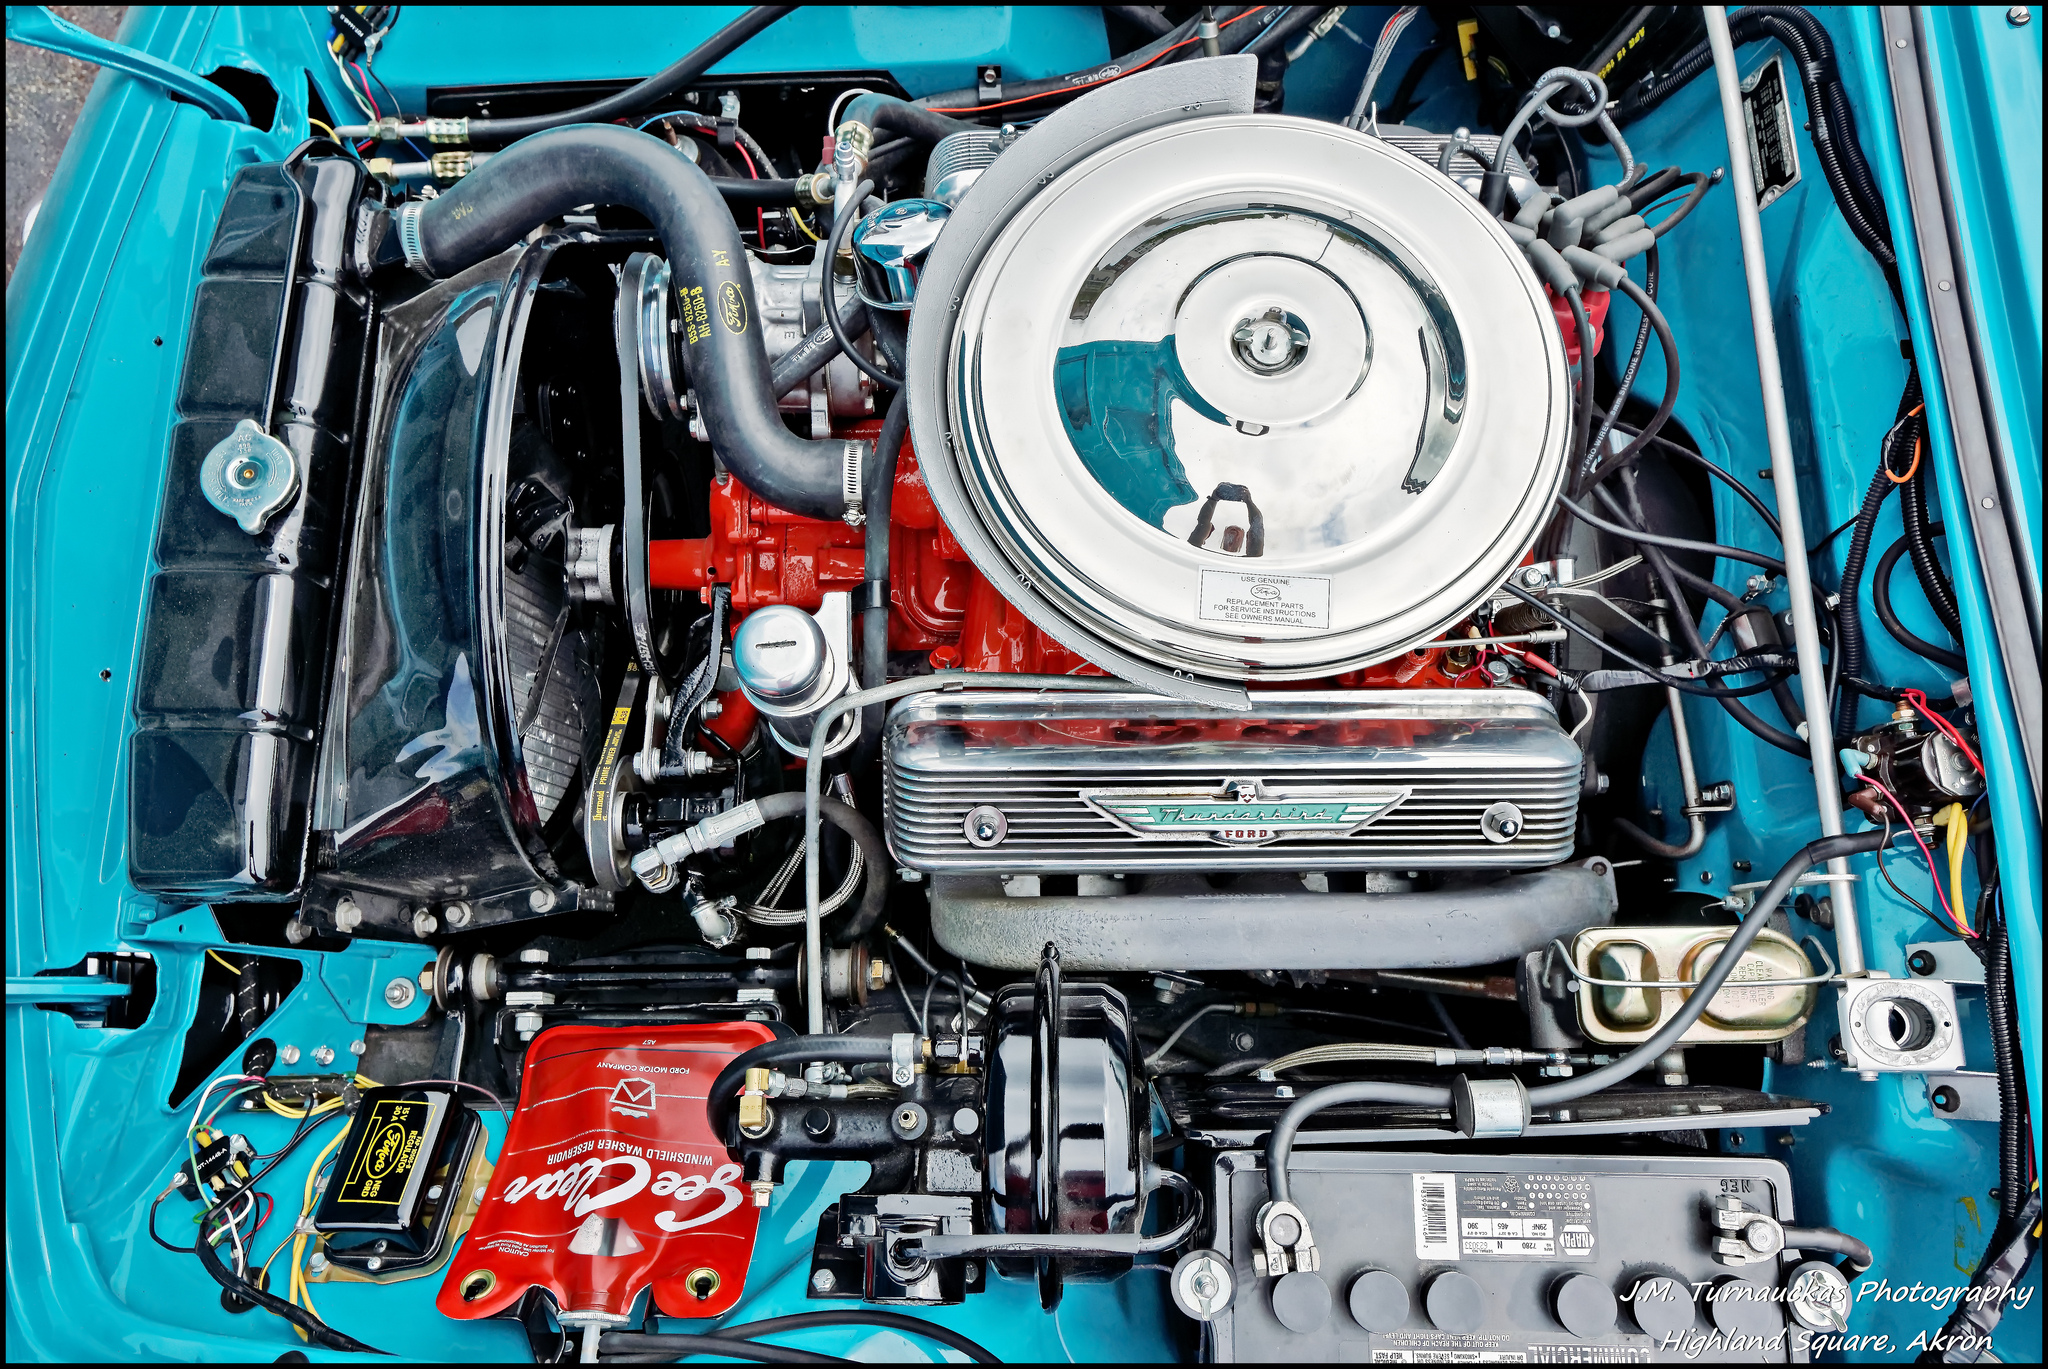 Vehicle inspection bond in florida increases to 100 000 for Motor vehicle surety bond